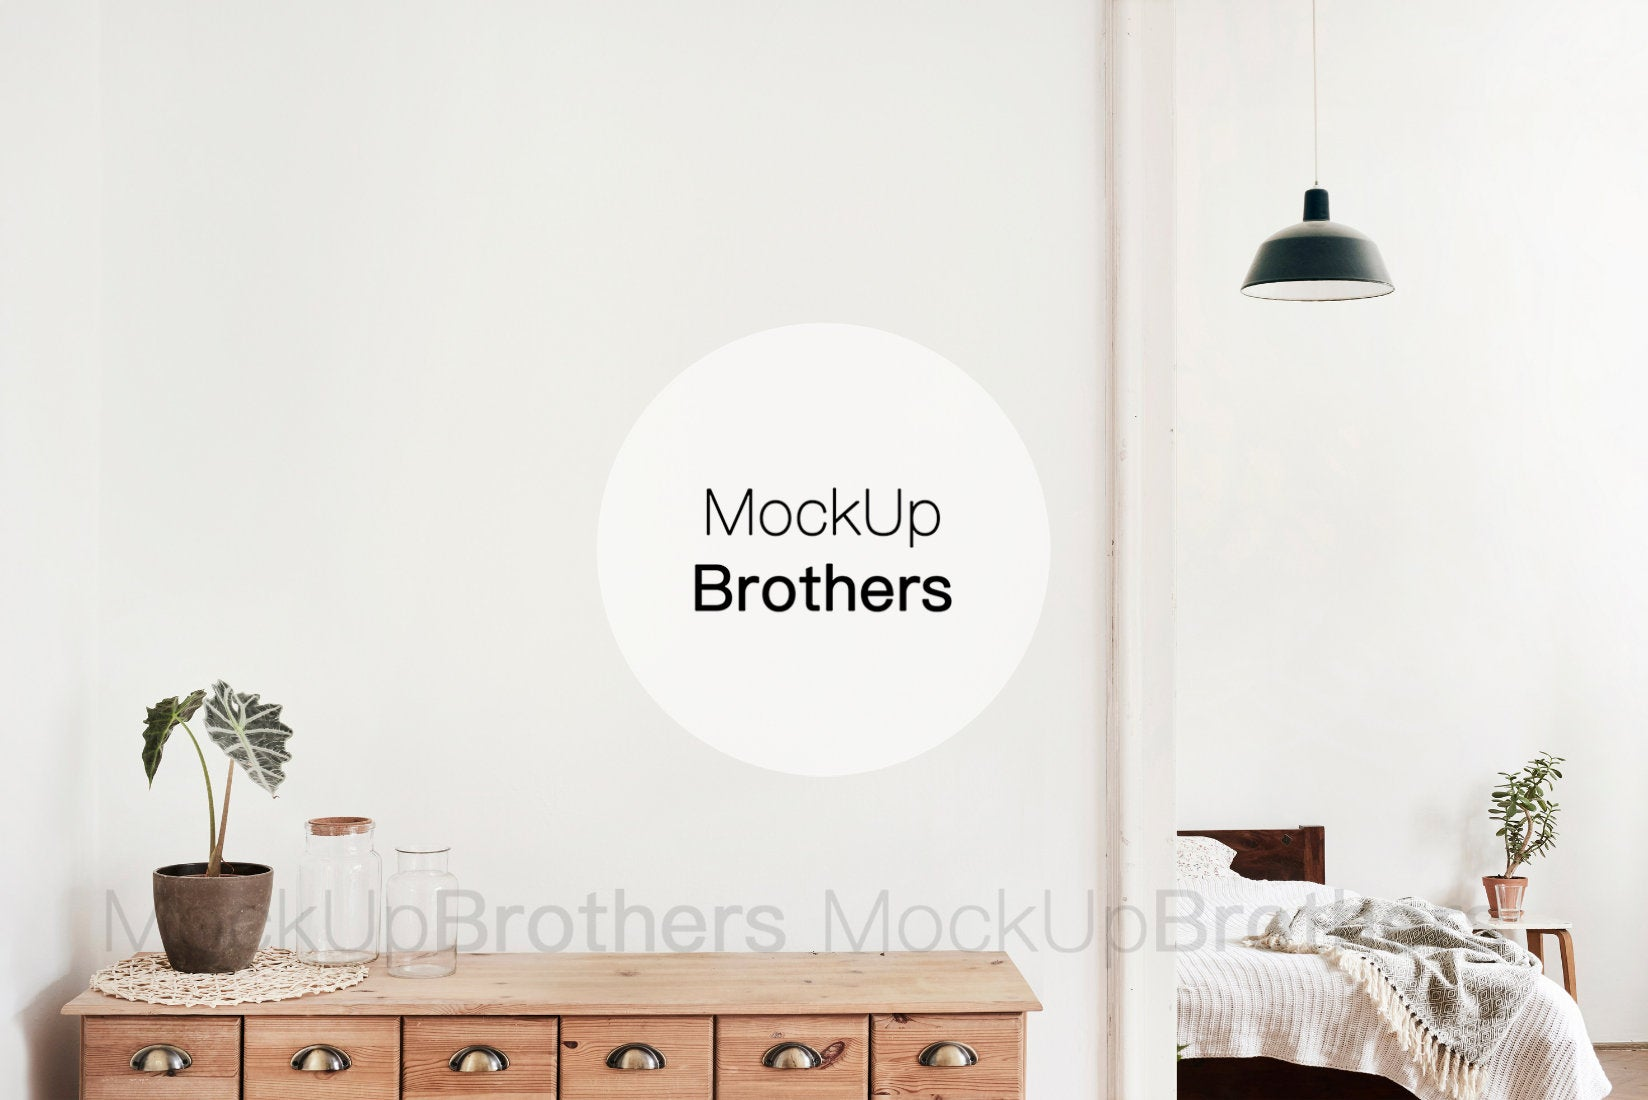 Living room interior stock photo by Mockup Brothers